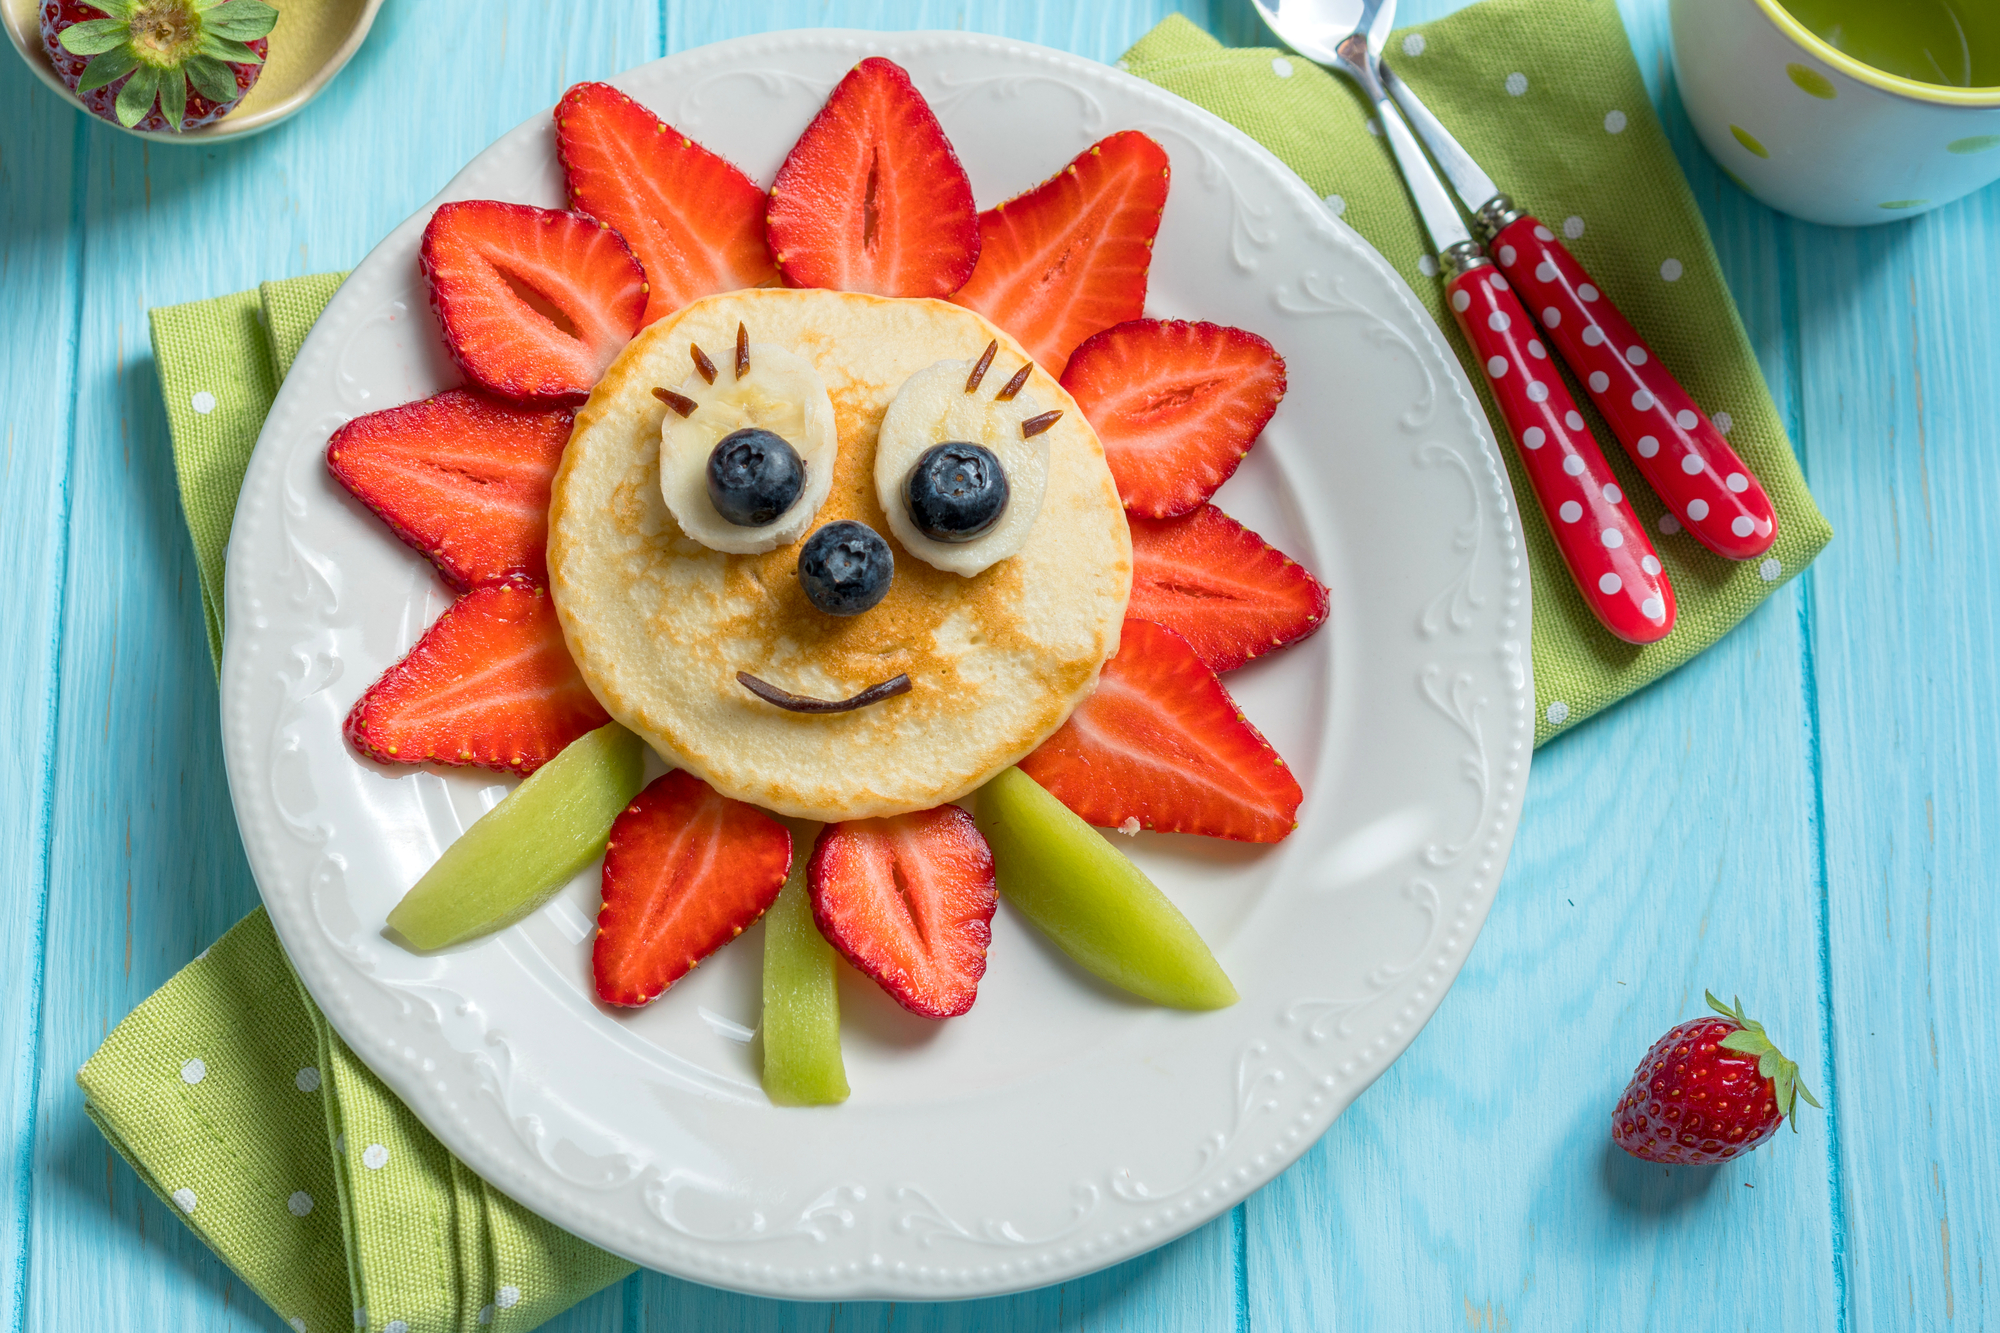 pancake shape dinto a sunflower with straberries for leaves and blueberries for a face